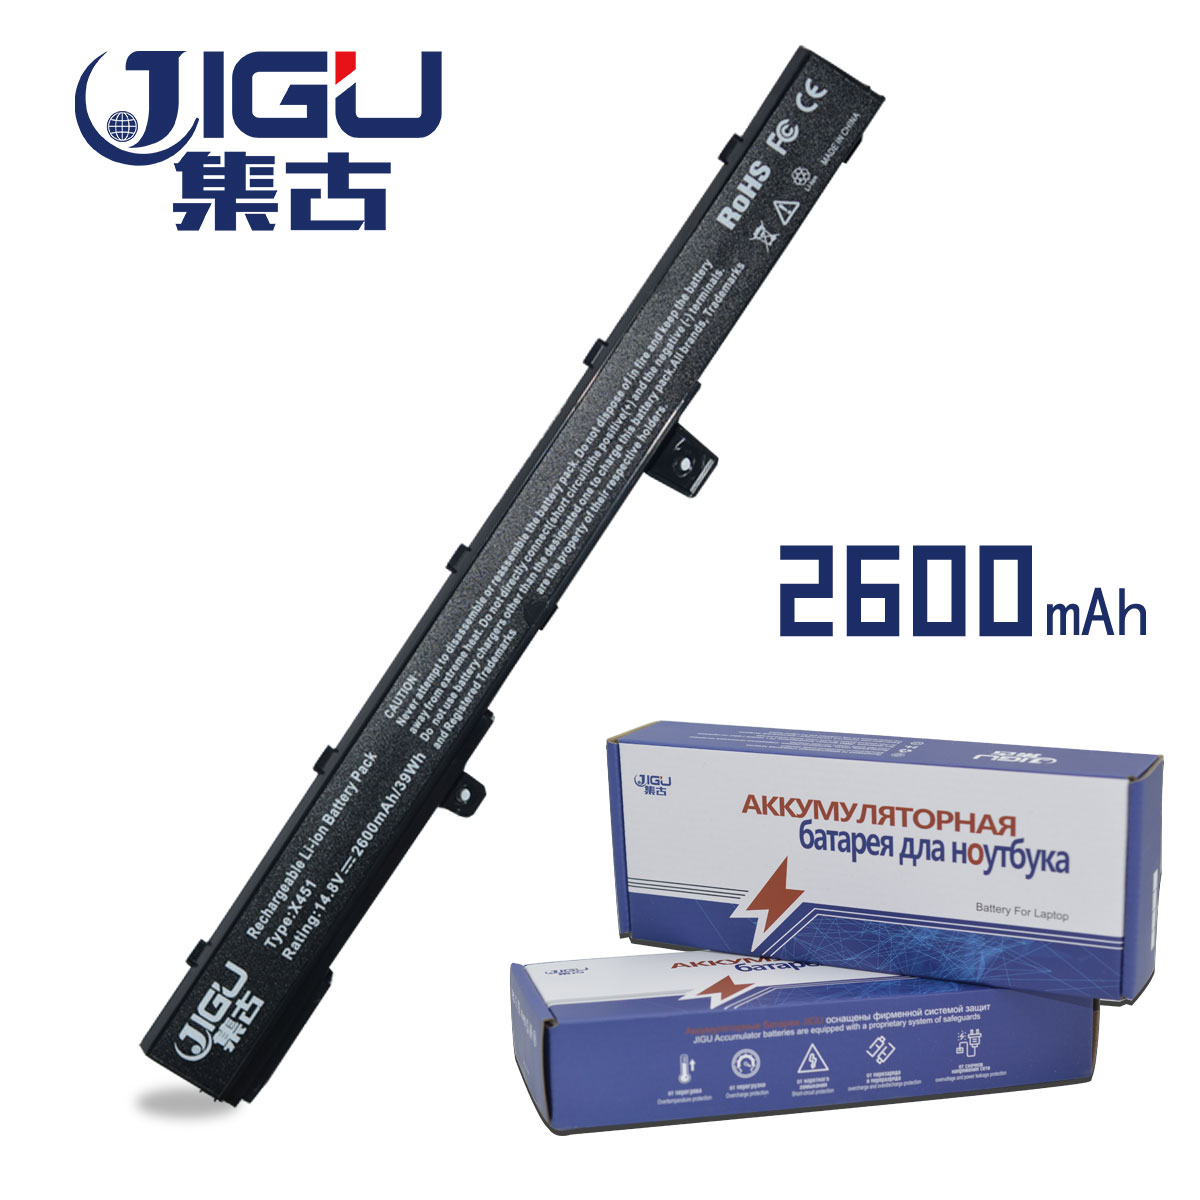 JIGU Laptop Battery 0B110-00250100 A41N1308 A31N1319 FOR ASUS X451 X551 X451C X451CA X551C X551CA 10set lot 60cm usb 3 0 pcie riser card pci e express 1x to 4 port pci e 16x extender adapter sata 15pin 6pin power cable for btc